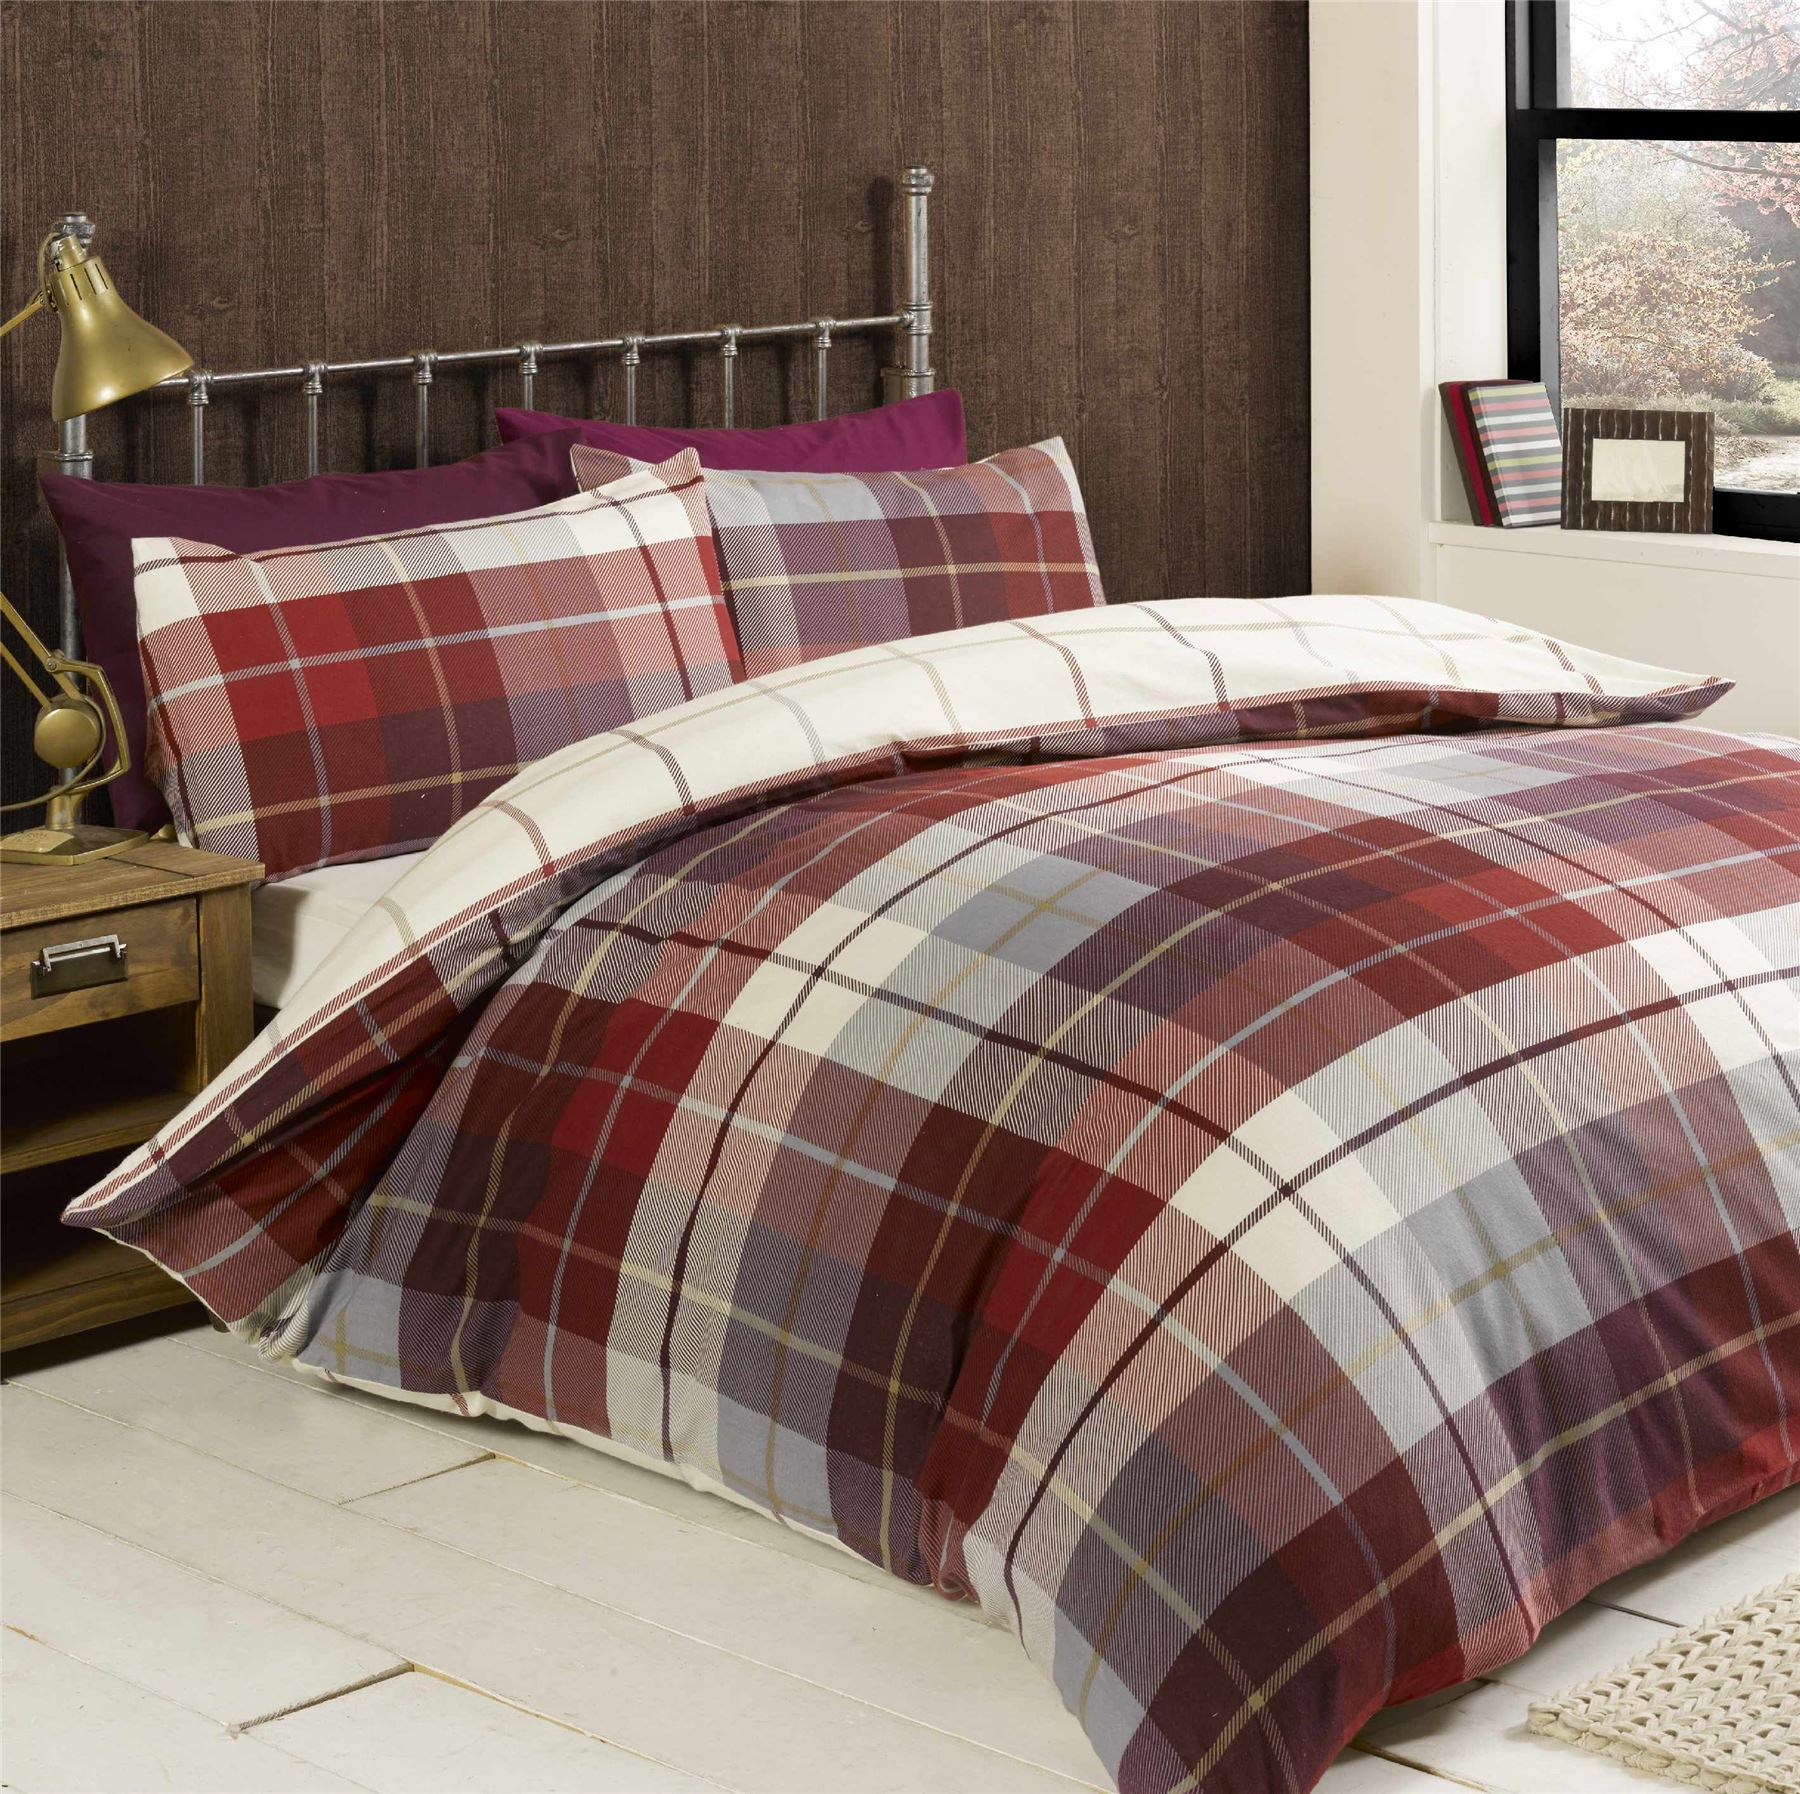 100 Brushed Cotton Flannelette Bedding Quilt Duvet Cover